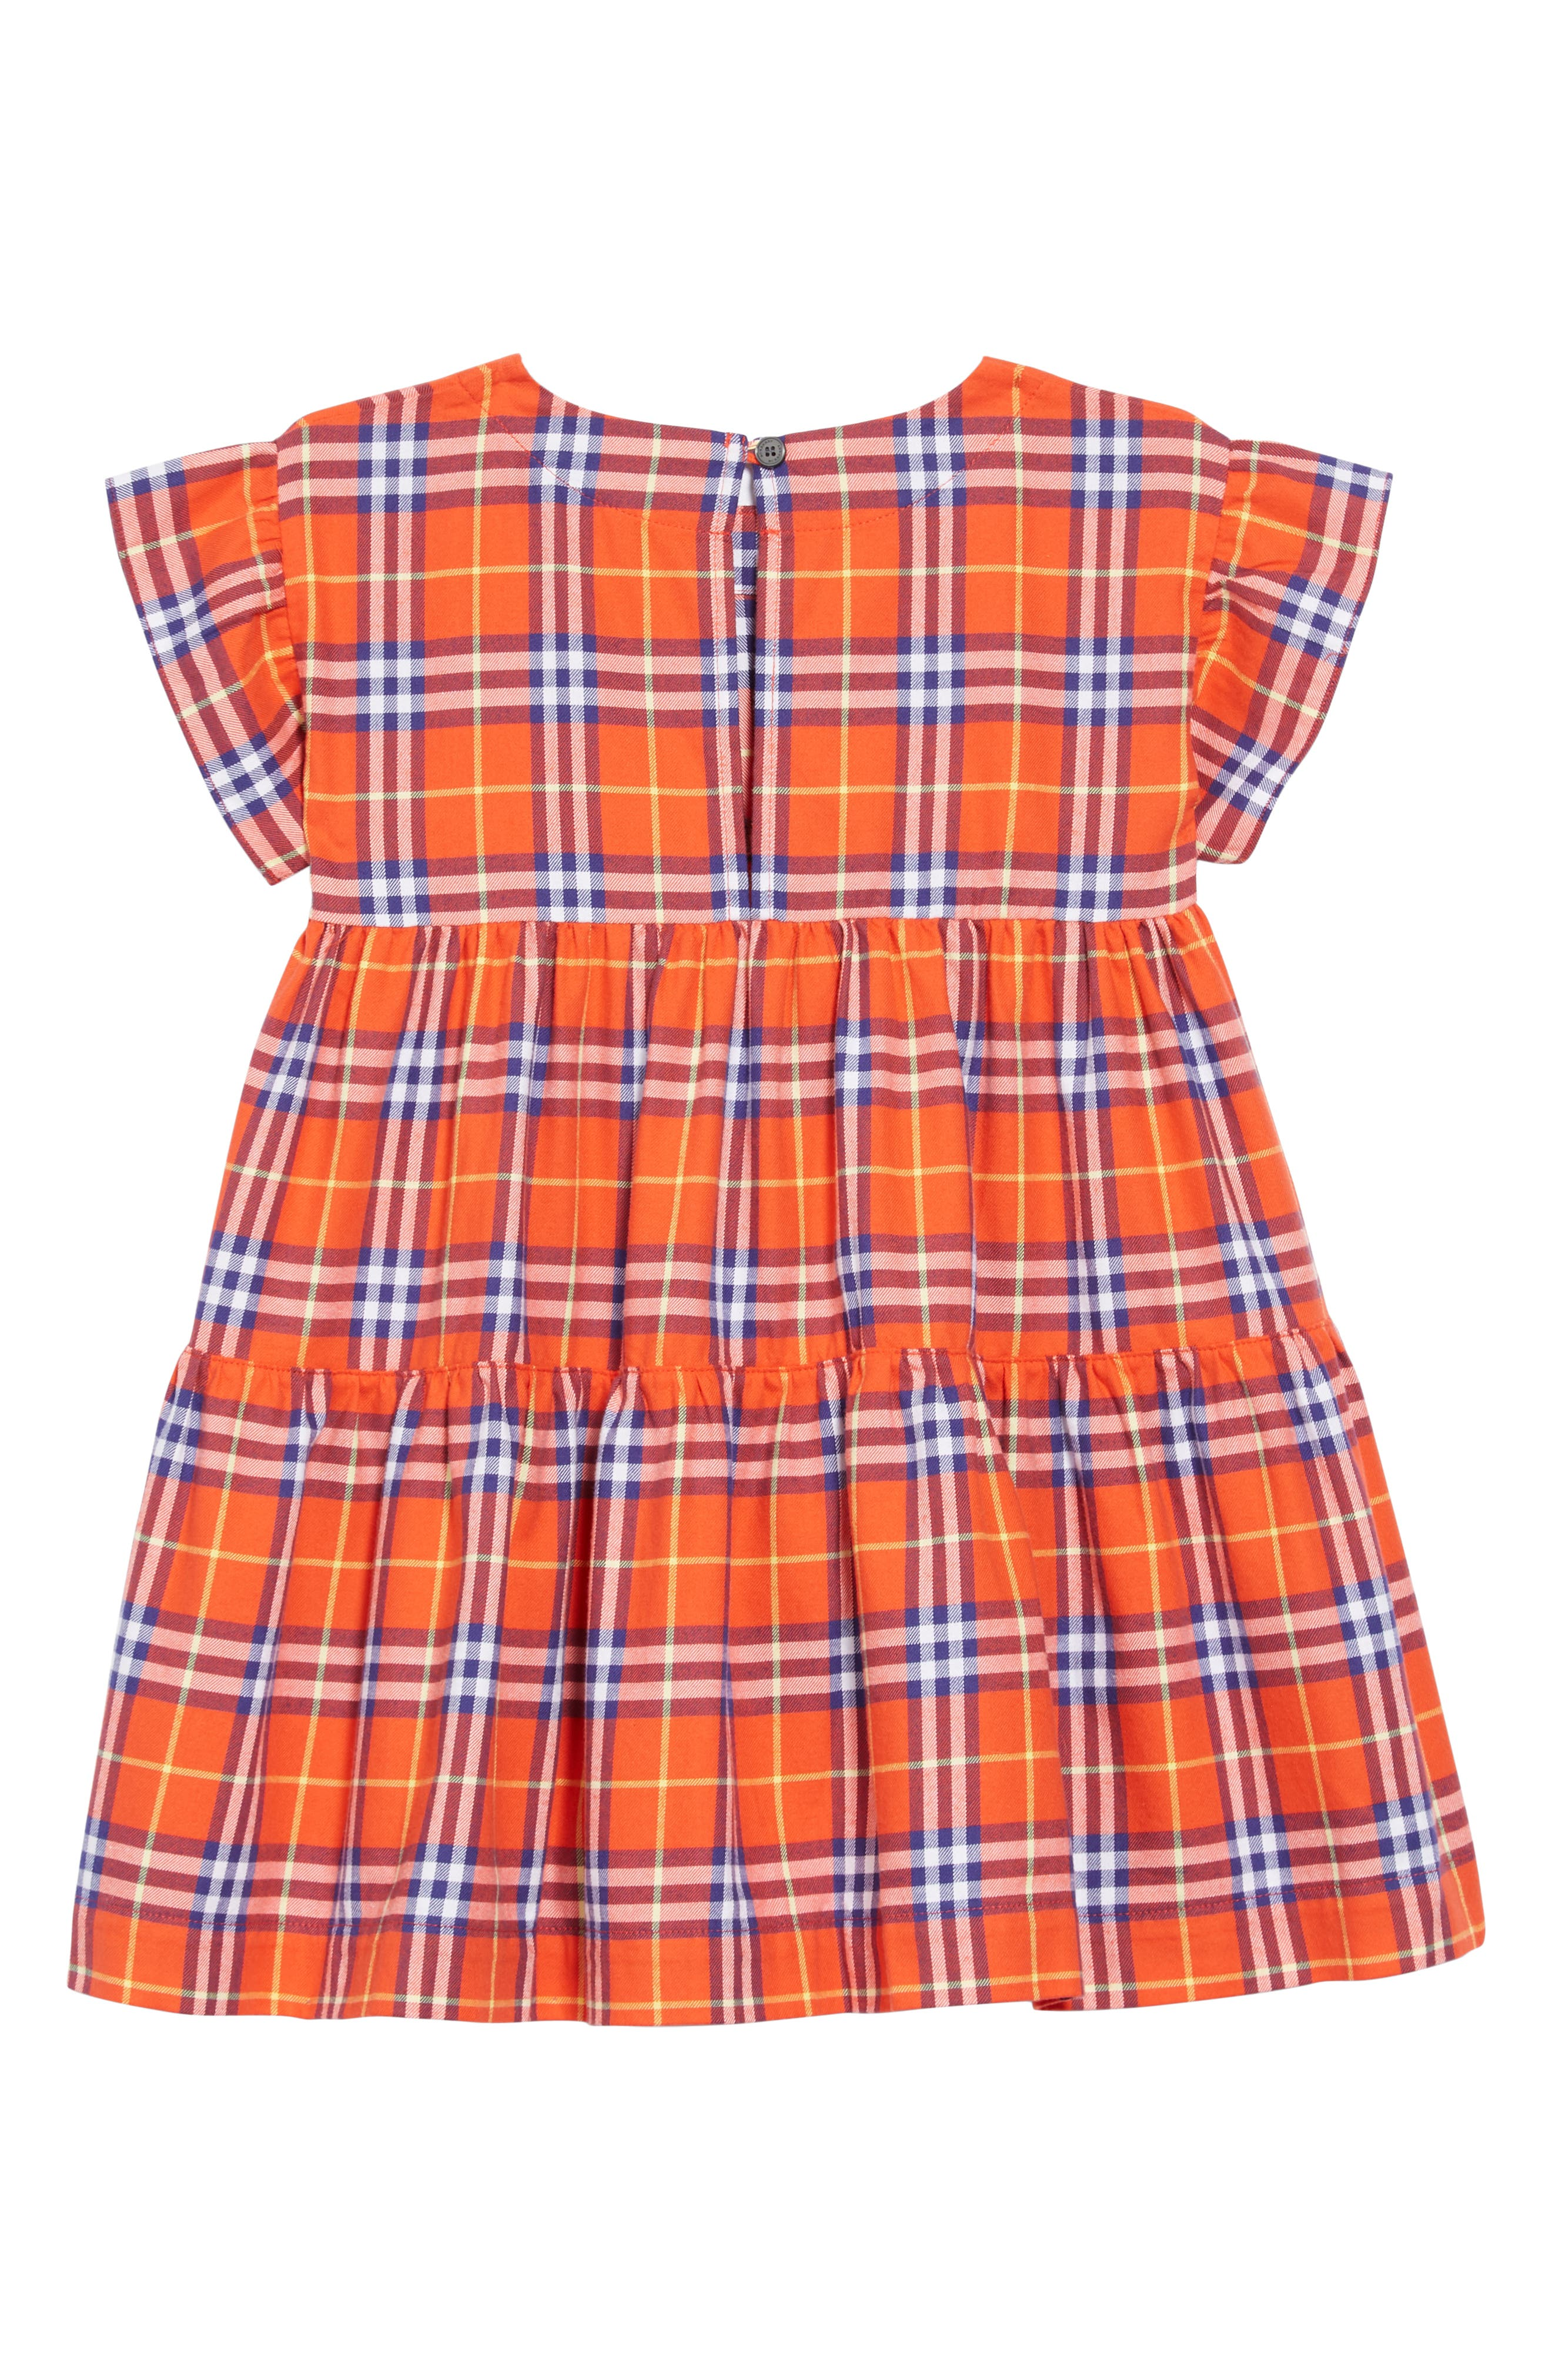 Alima Check Dress,                             Alternate thumbnail 2, color,                             ORANGE RED CHECK